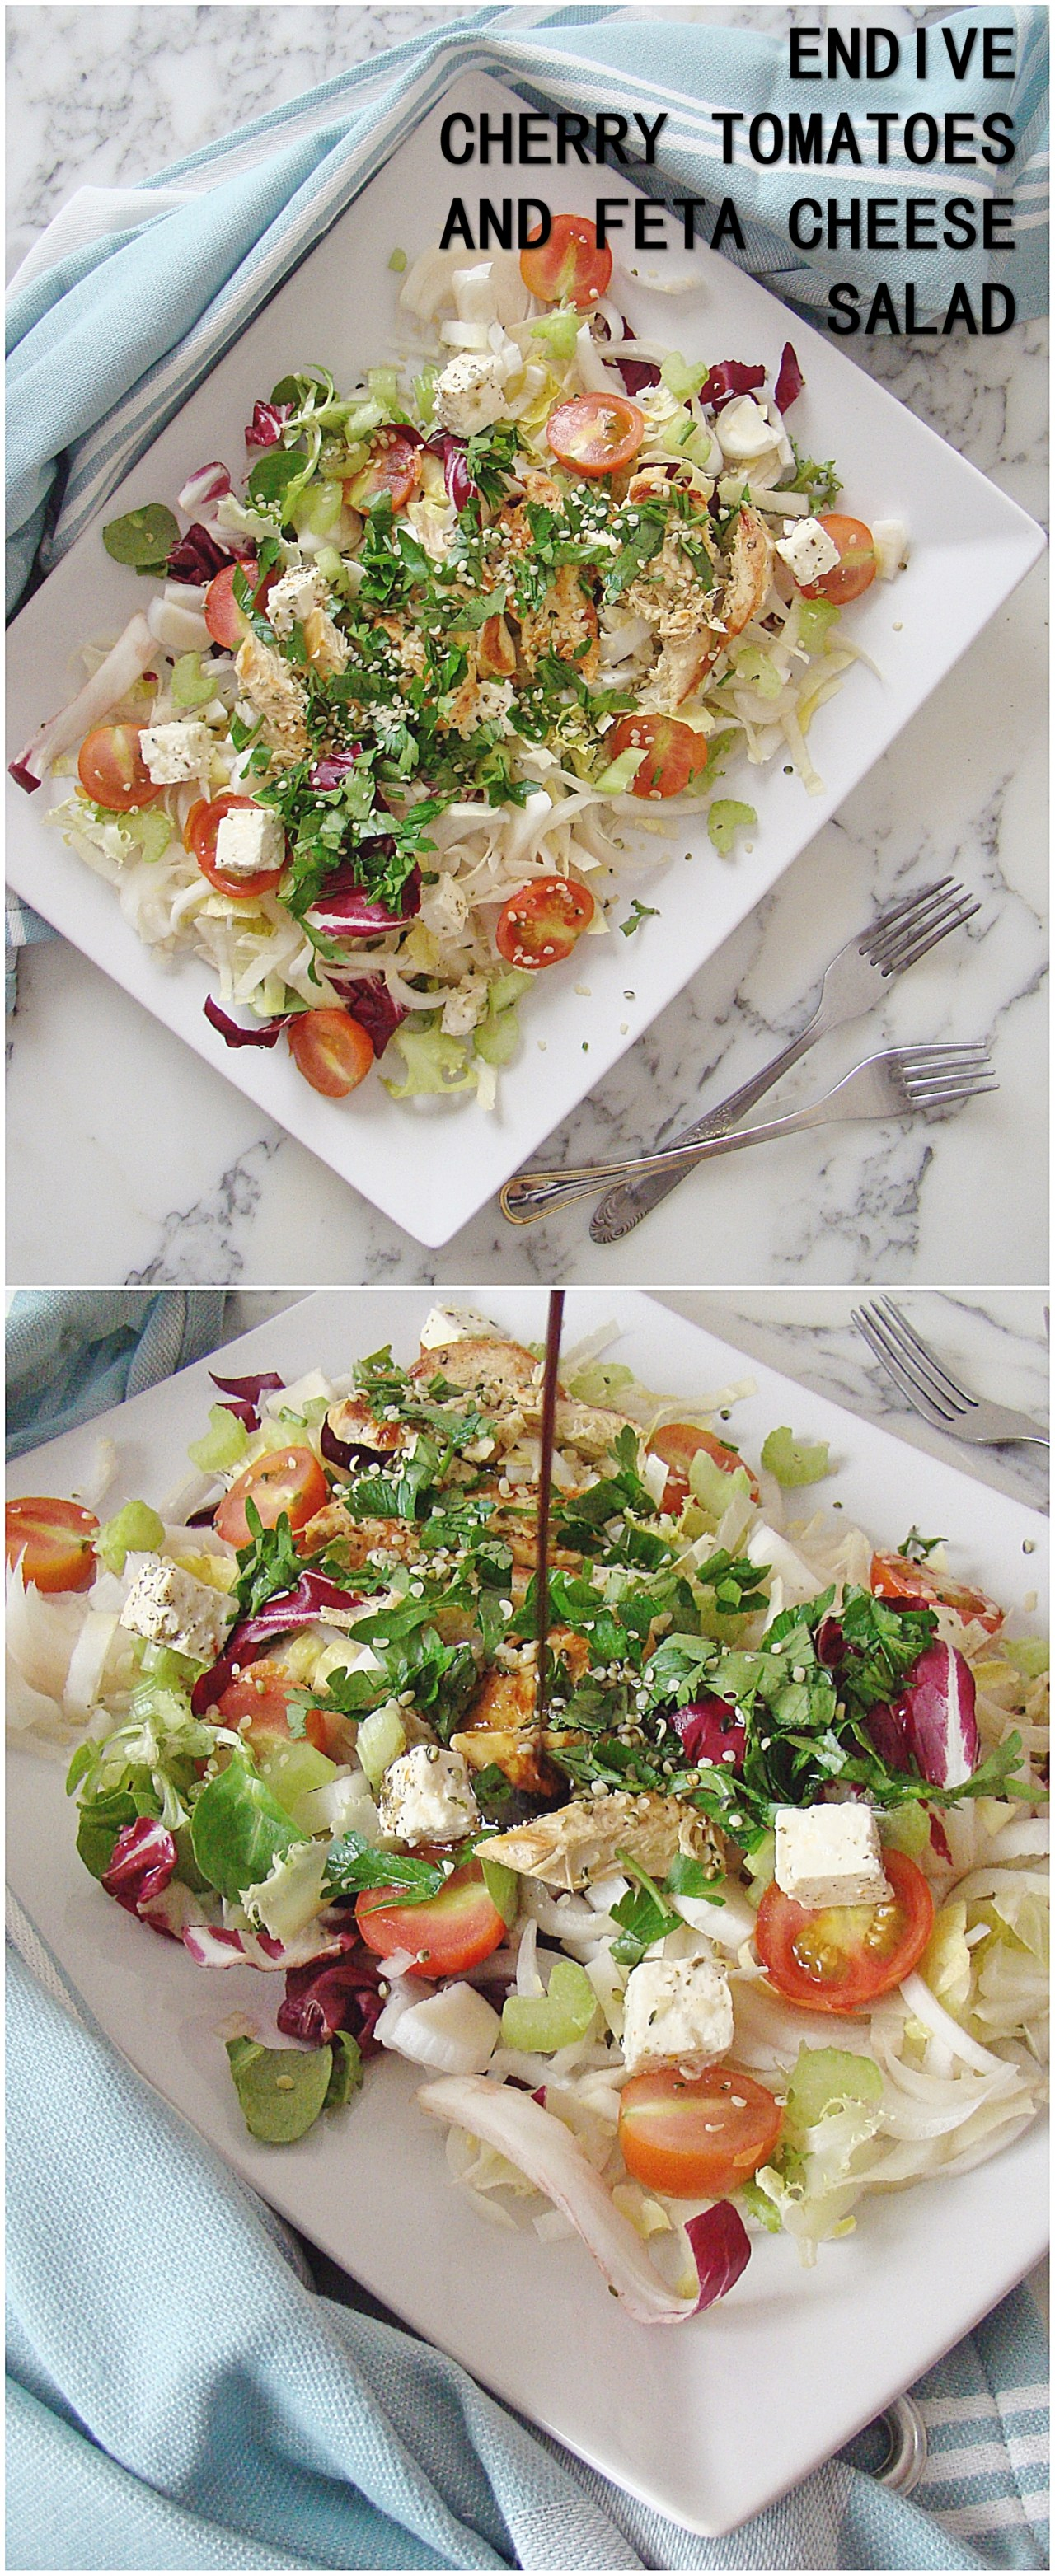 endive-cherry-tomatoes-and-feta-cheese-salad